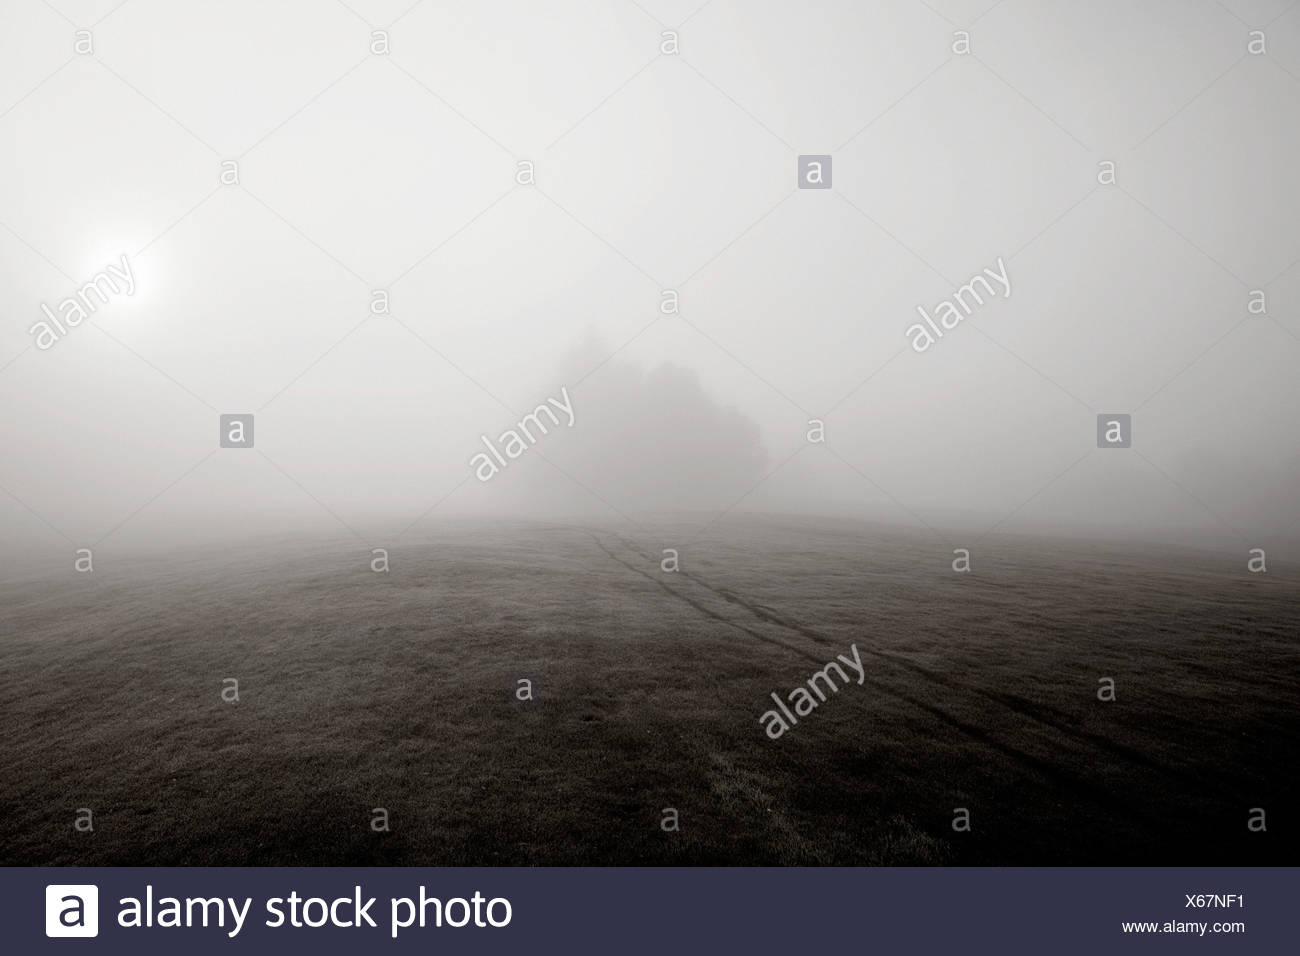 Fog over hill and distant trees - Stock Image